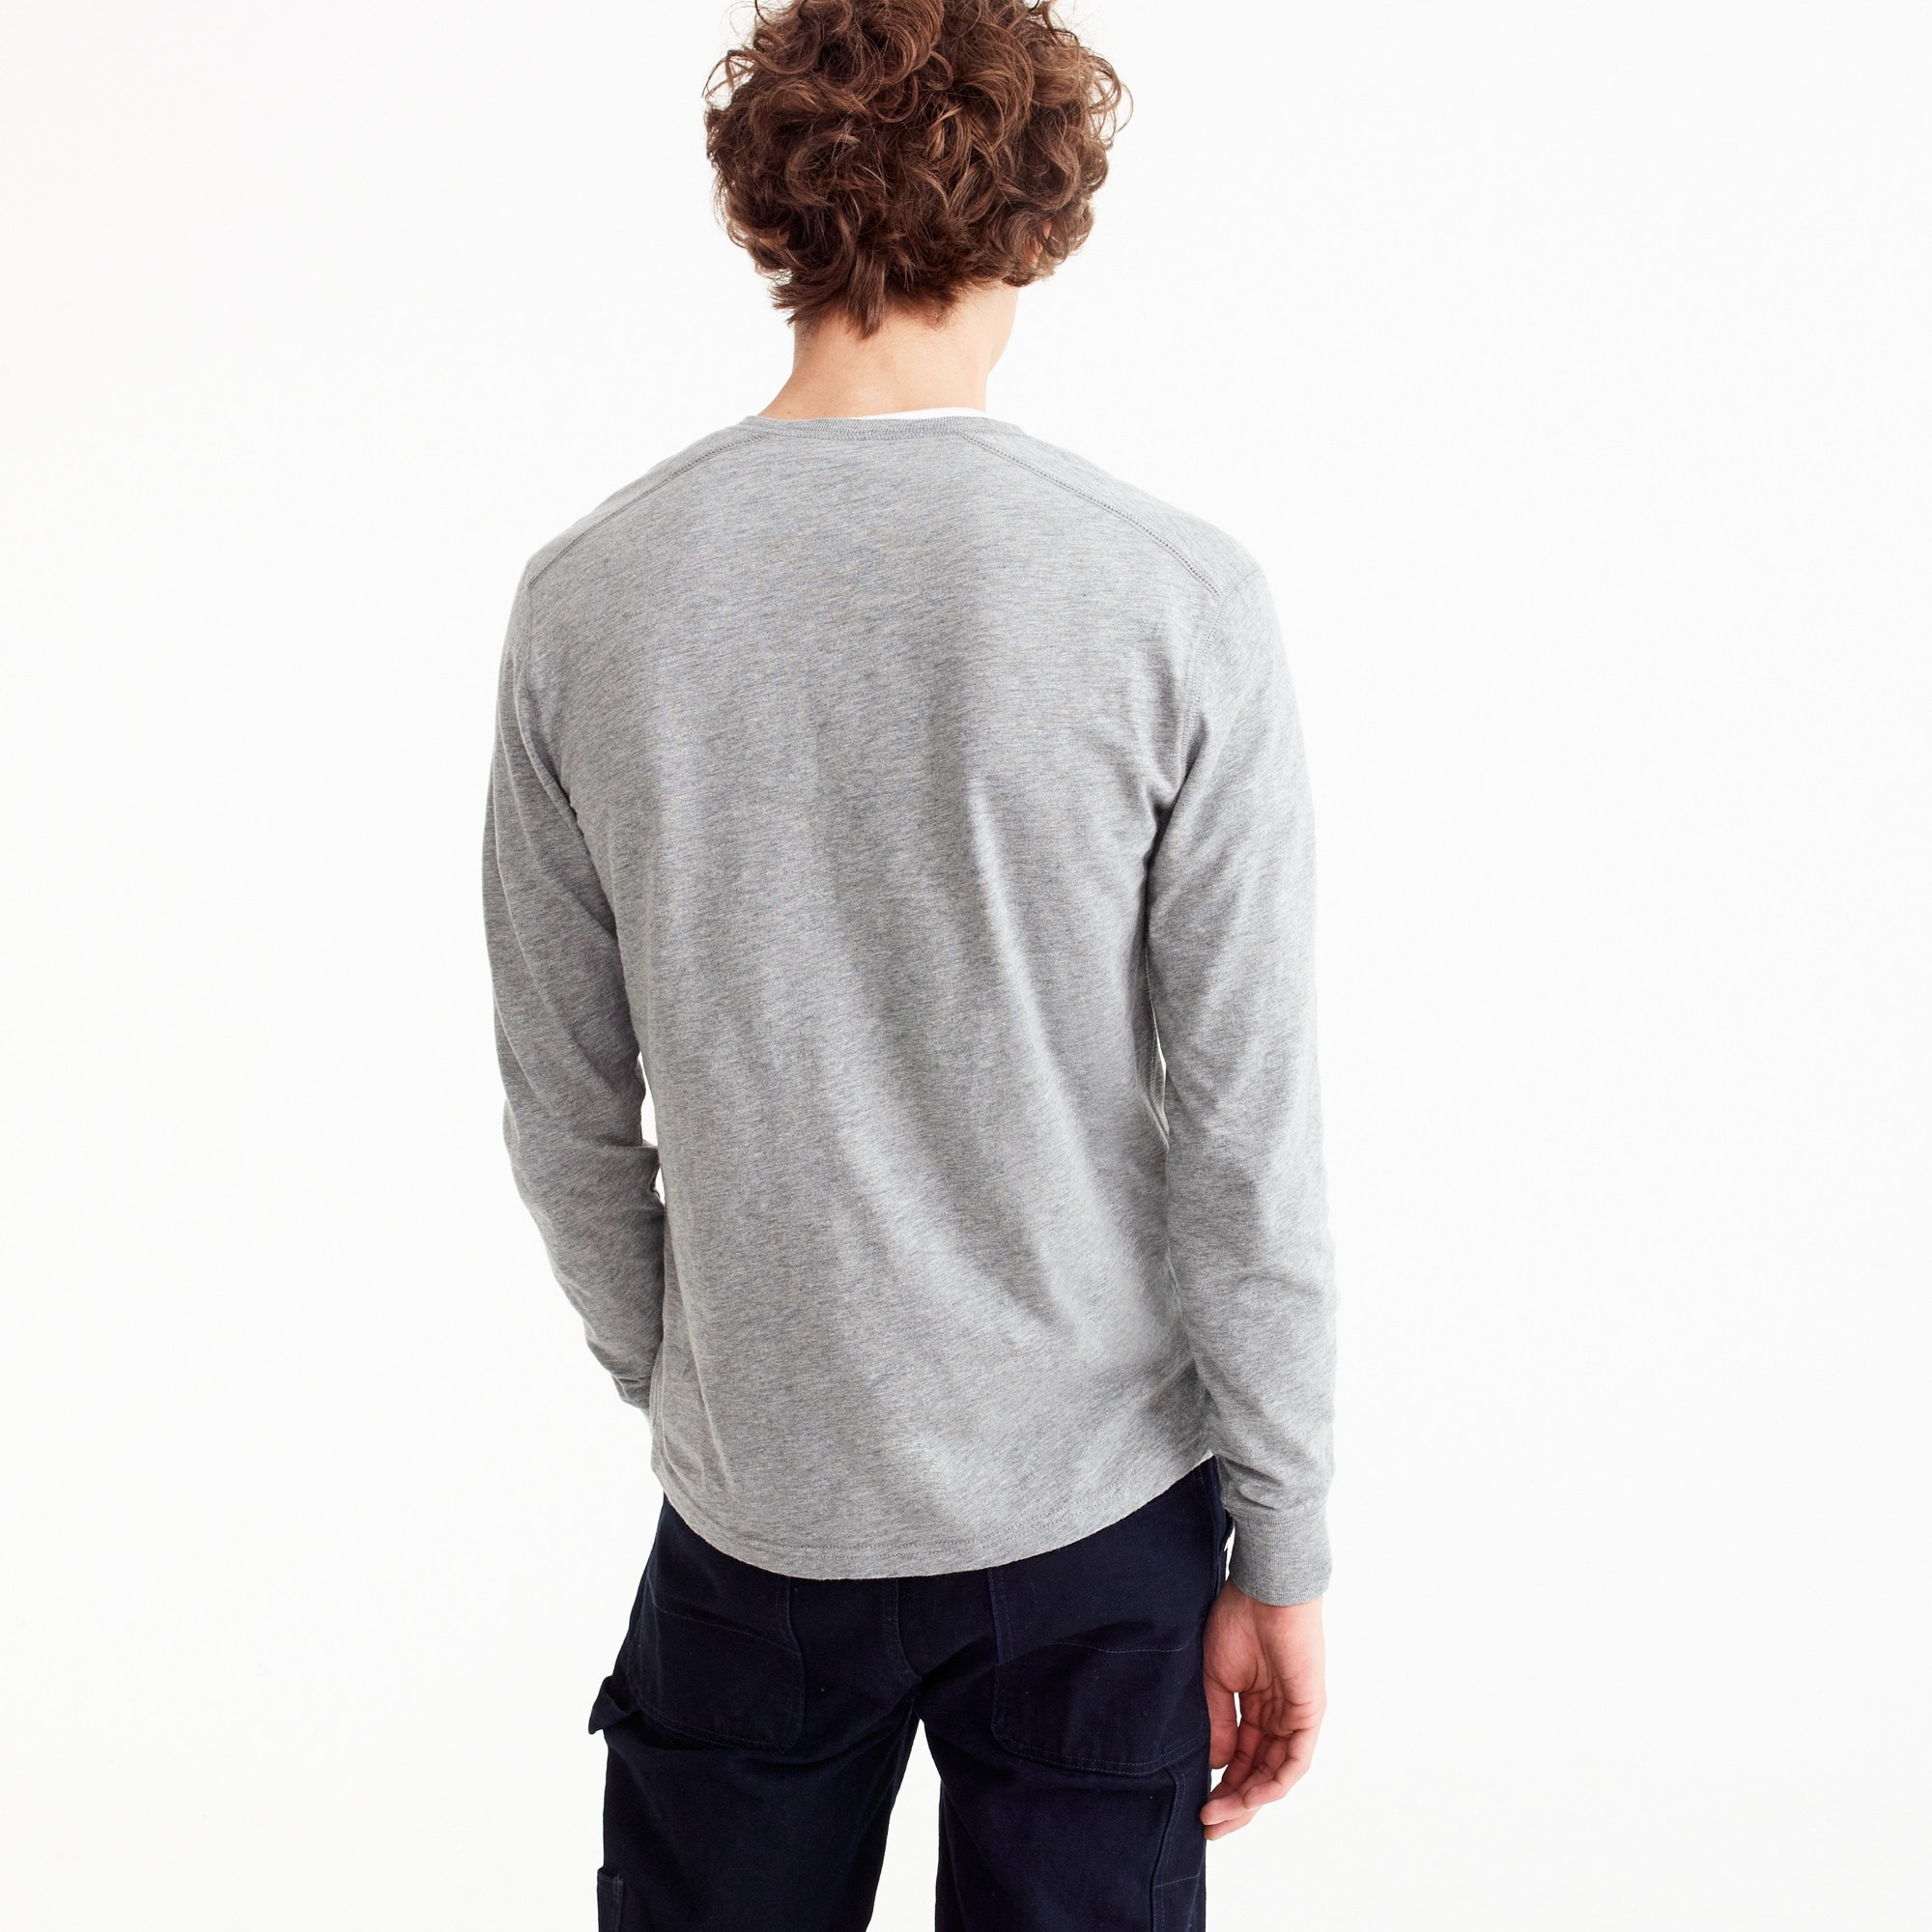 Image 3 for Tall slub cotton garment-dyed henley